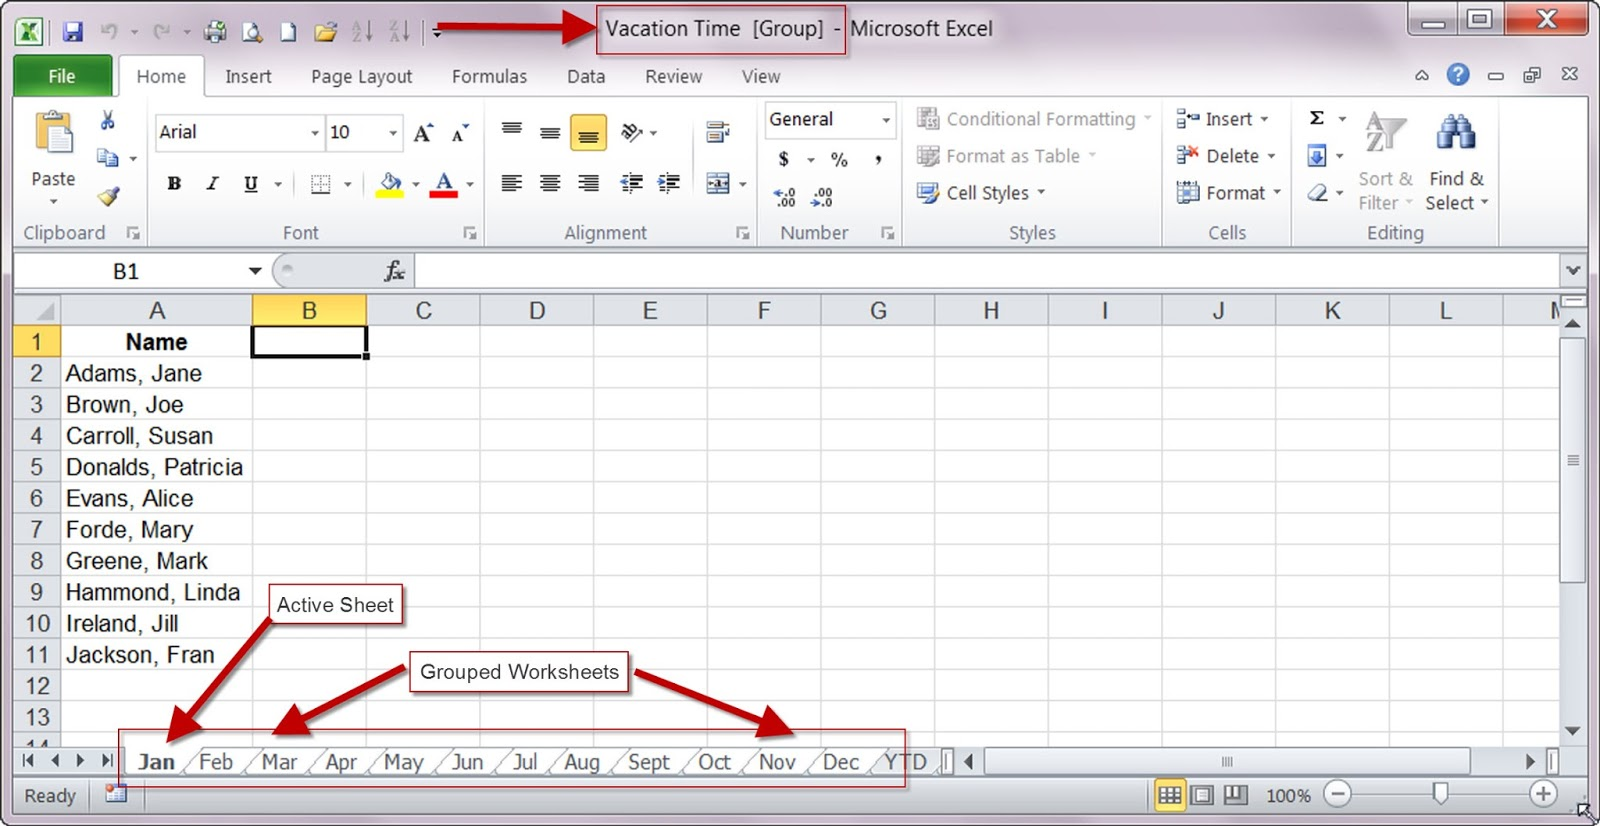 Worksheet Grouping Worksheets In Excel Grass Fedjp